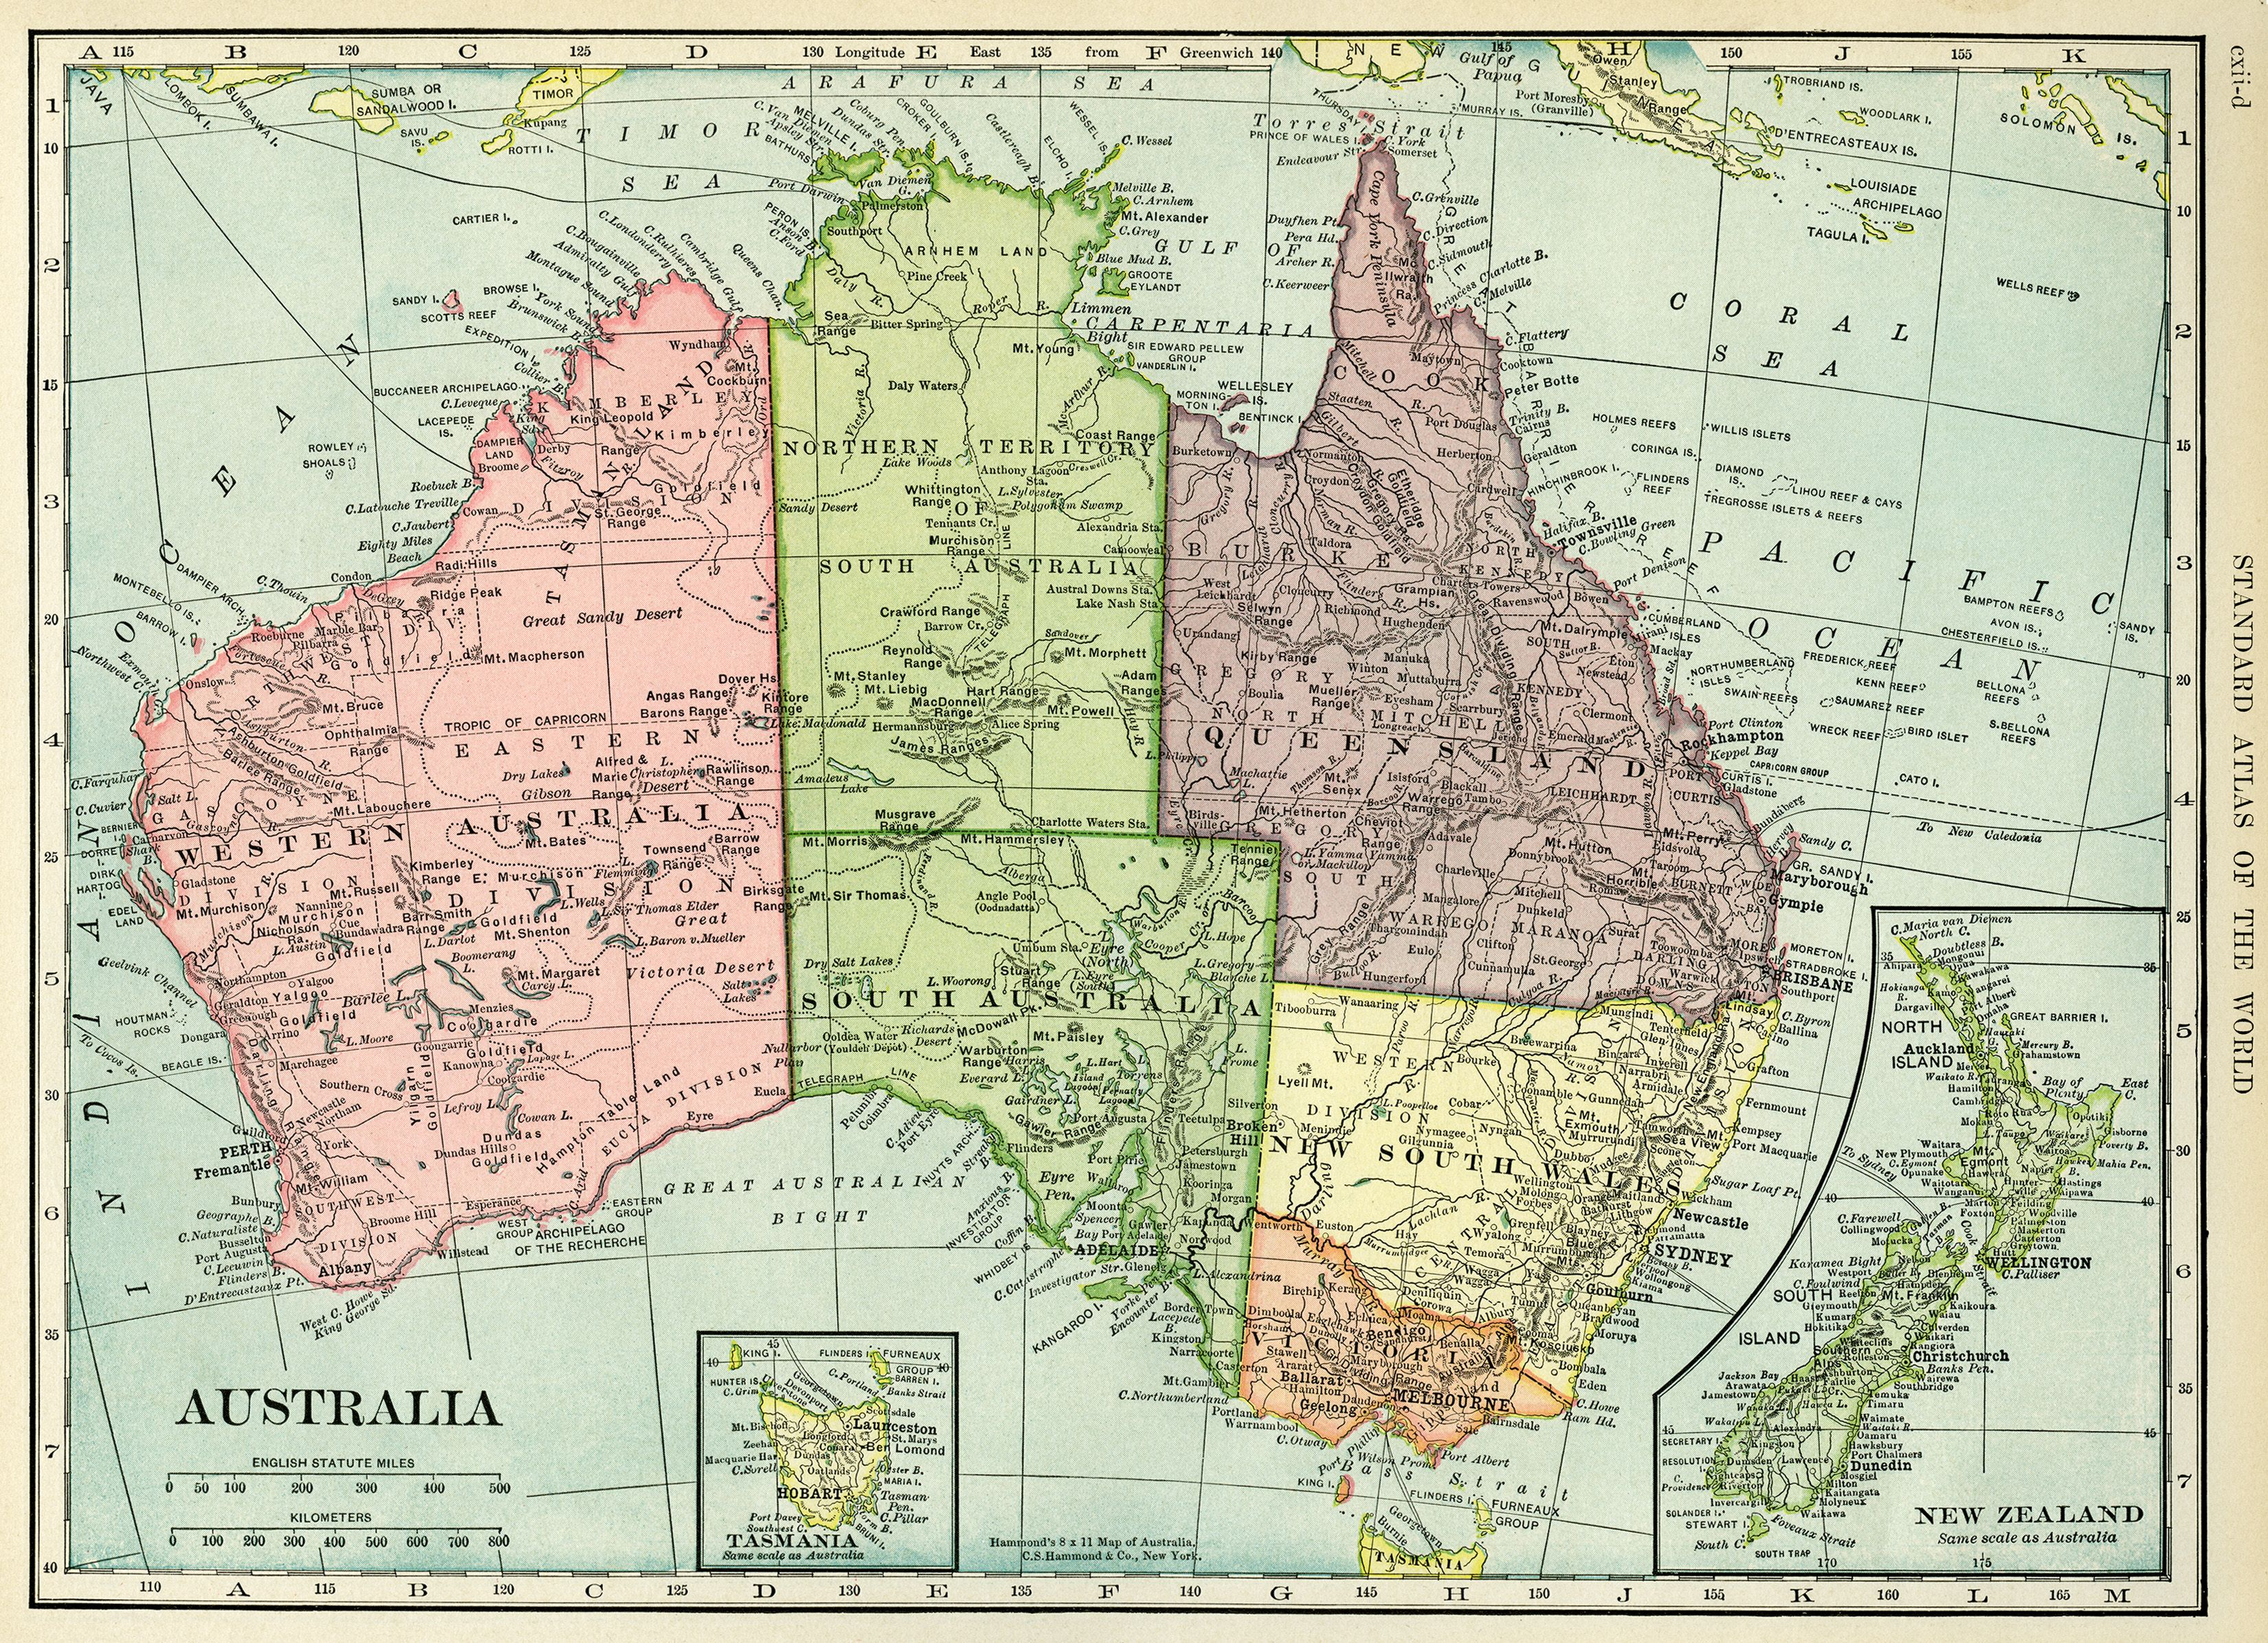 New Zealand Map Australia.C S Hammond Map Antique Map History Geography Australia Old Map